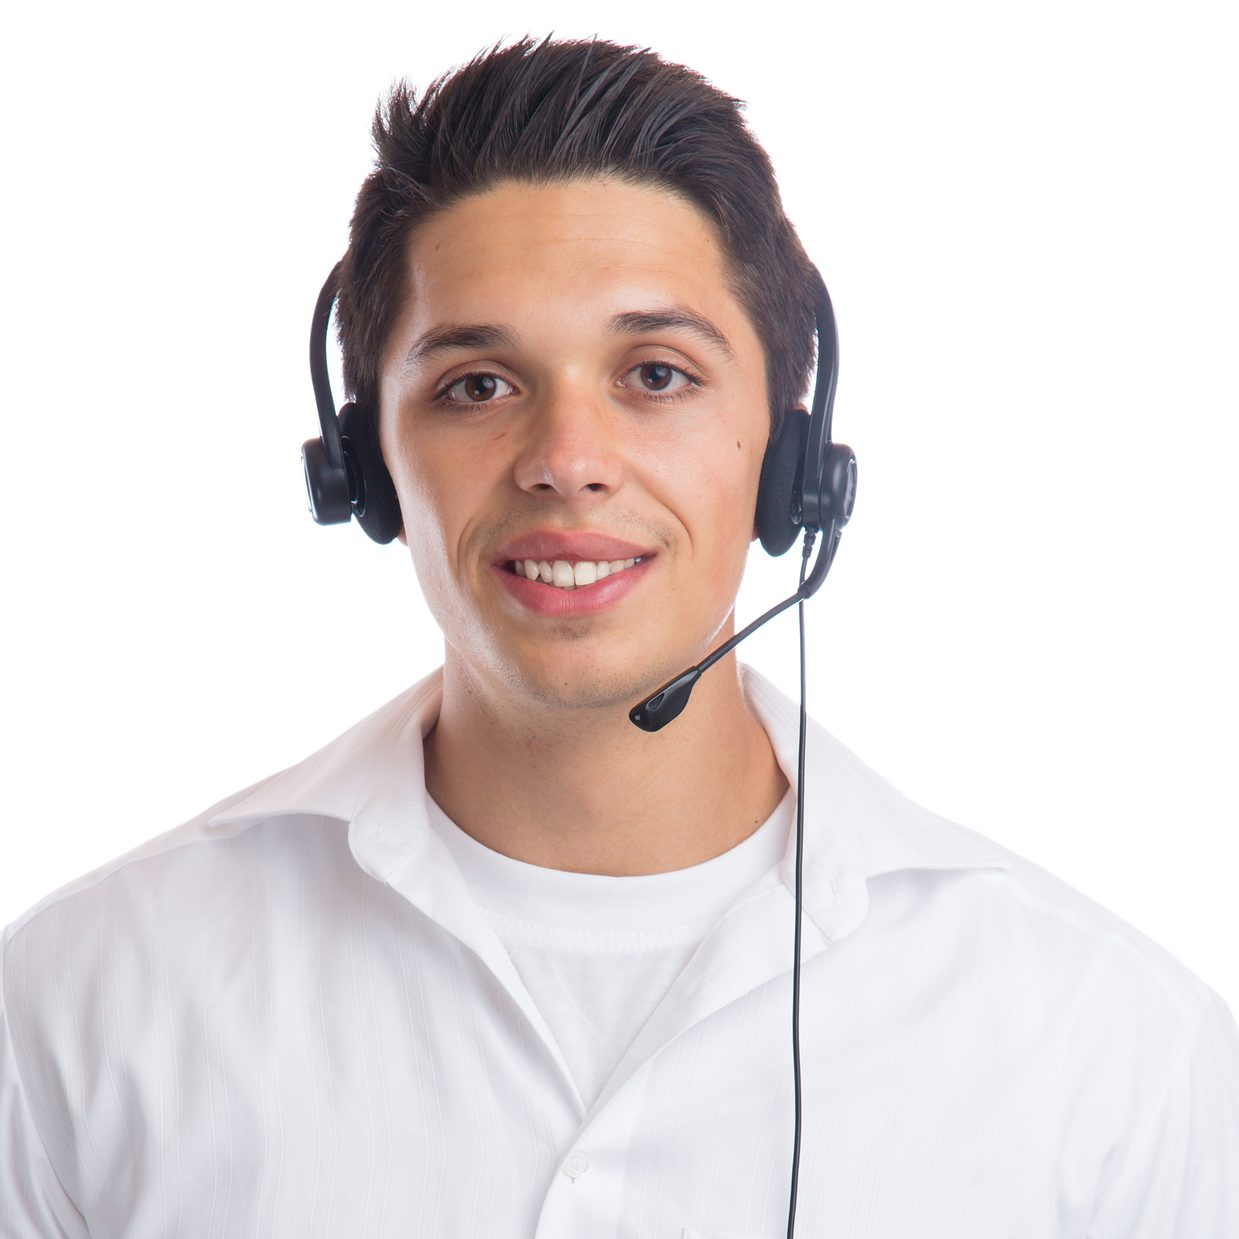 Call center agent team headset telephone phone secretary business isolated on a white background